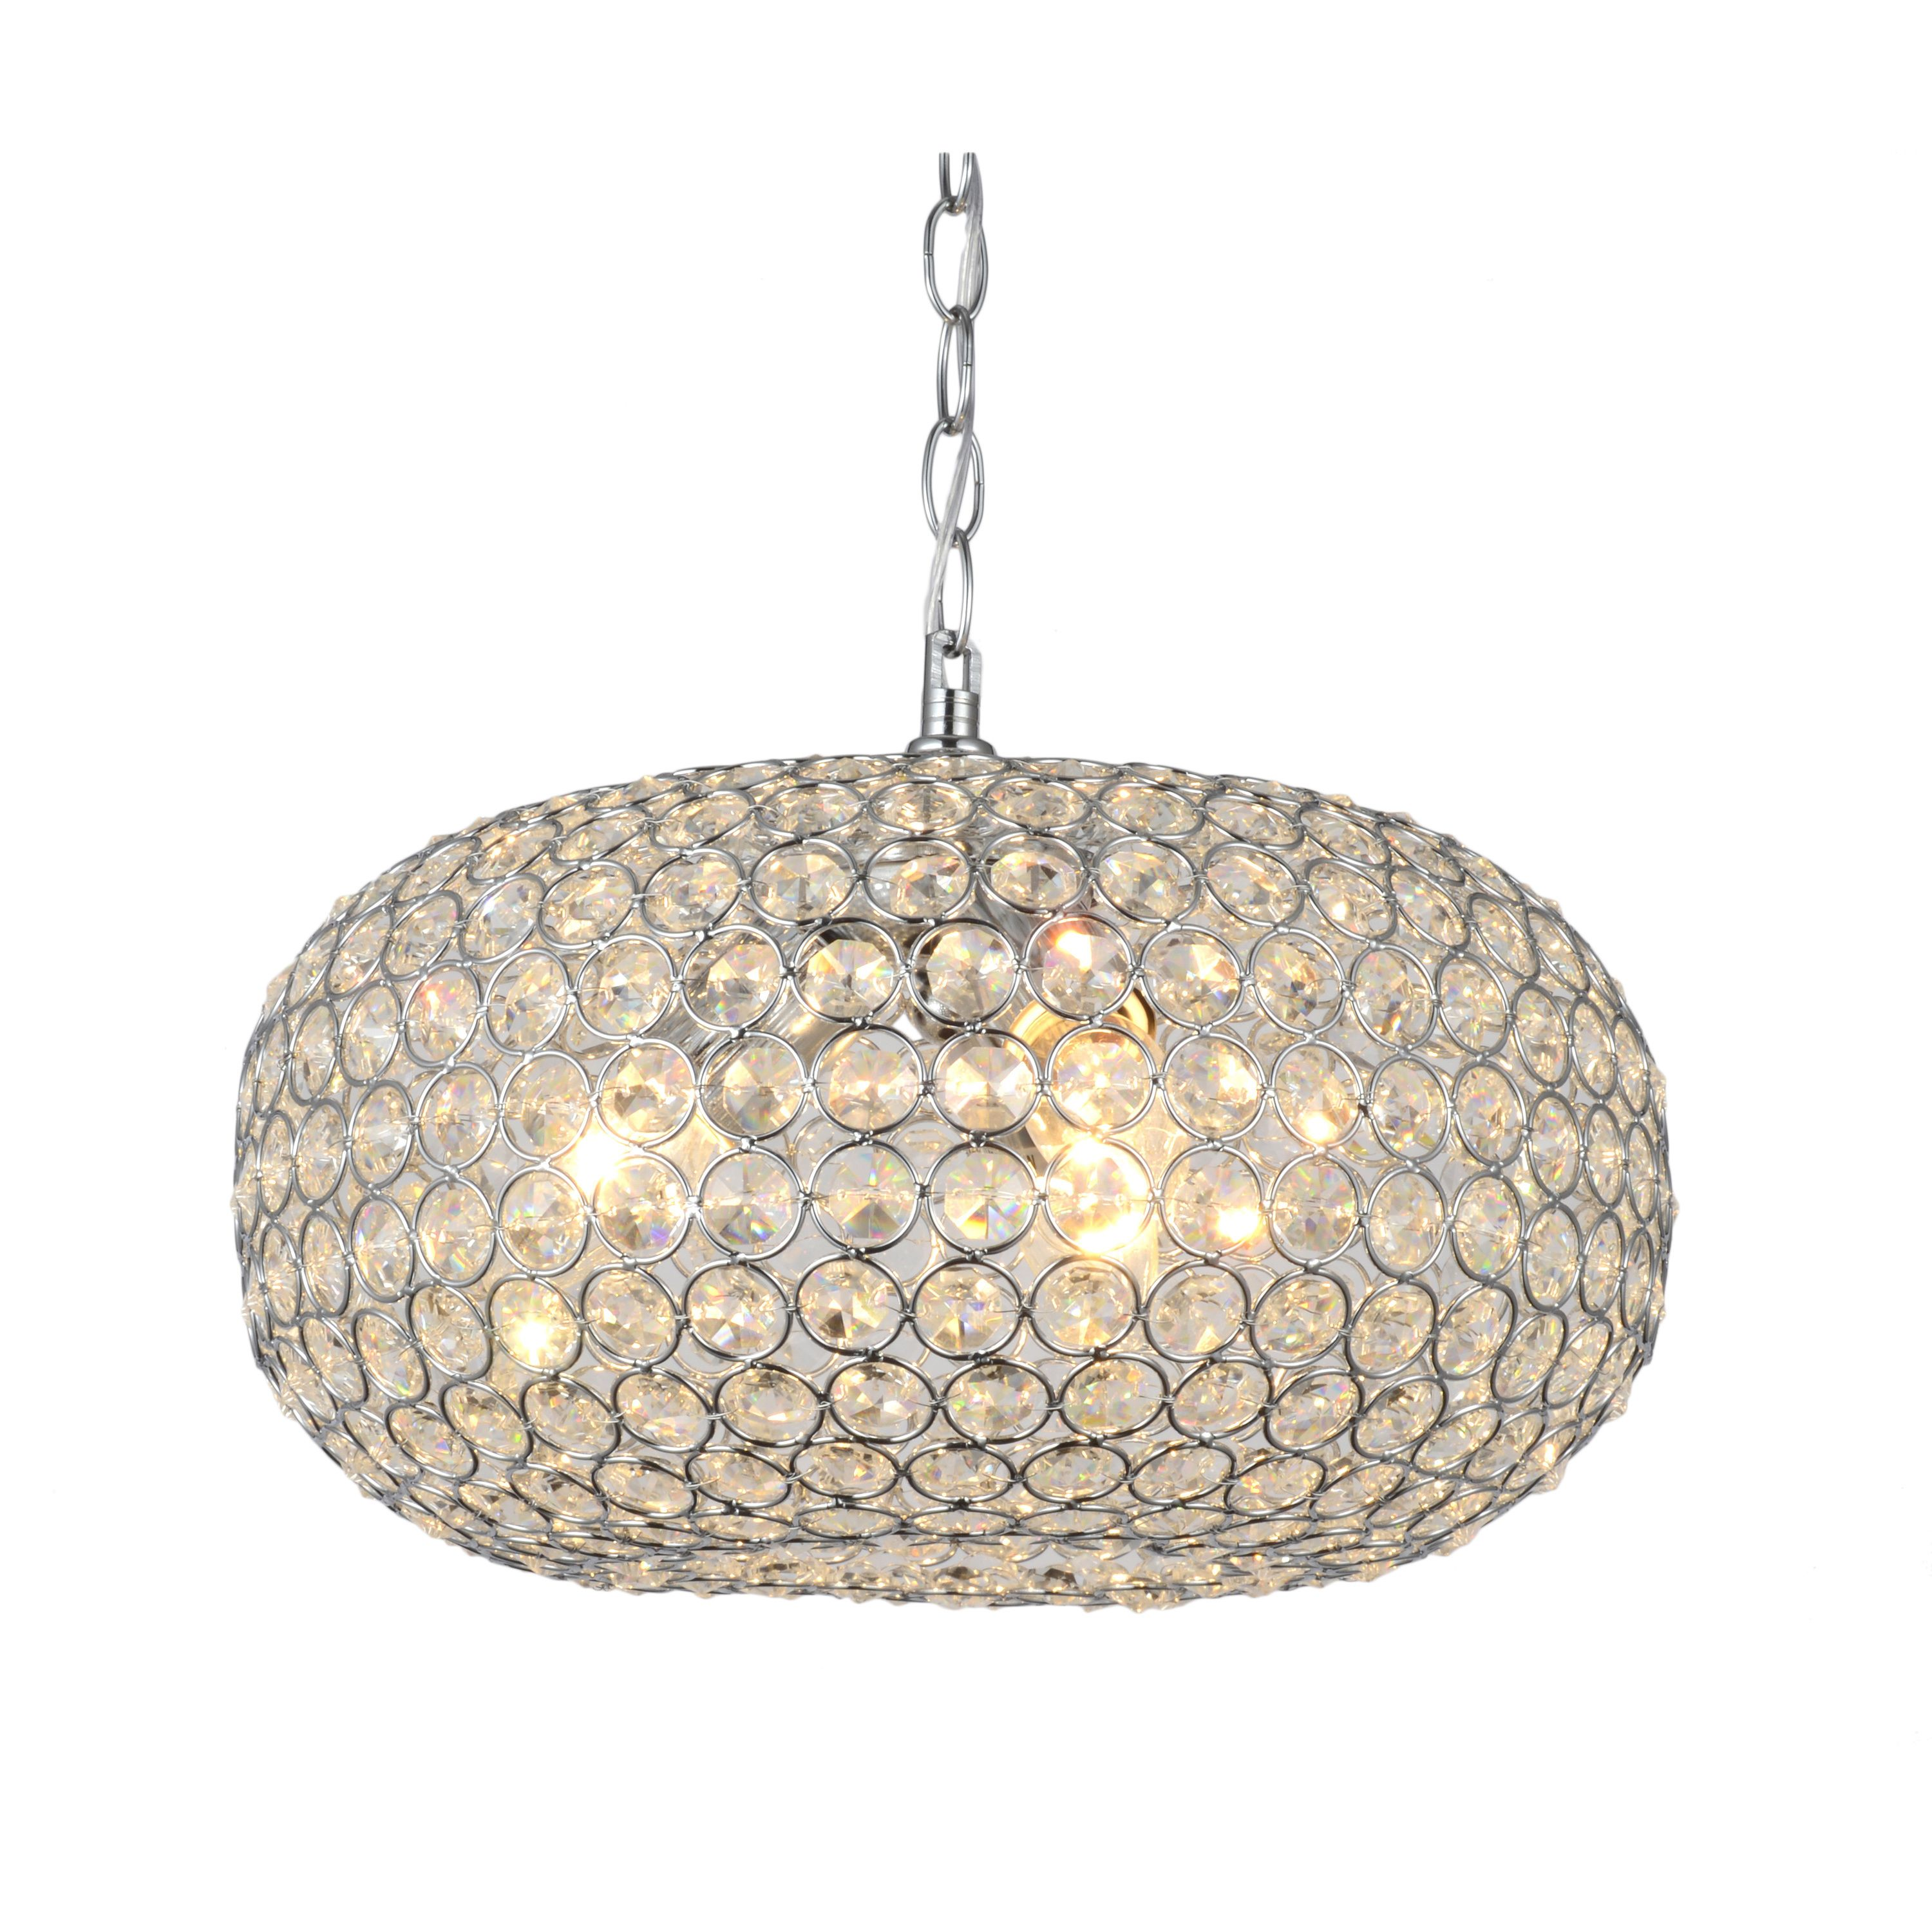 Francisca oval shaped crystal and chrome 3 light chandelier by the francisca oval shaped crystal and chrome 3 light chandelier overstock shopping great arubaitofo Choice Image